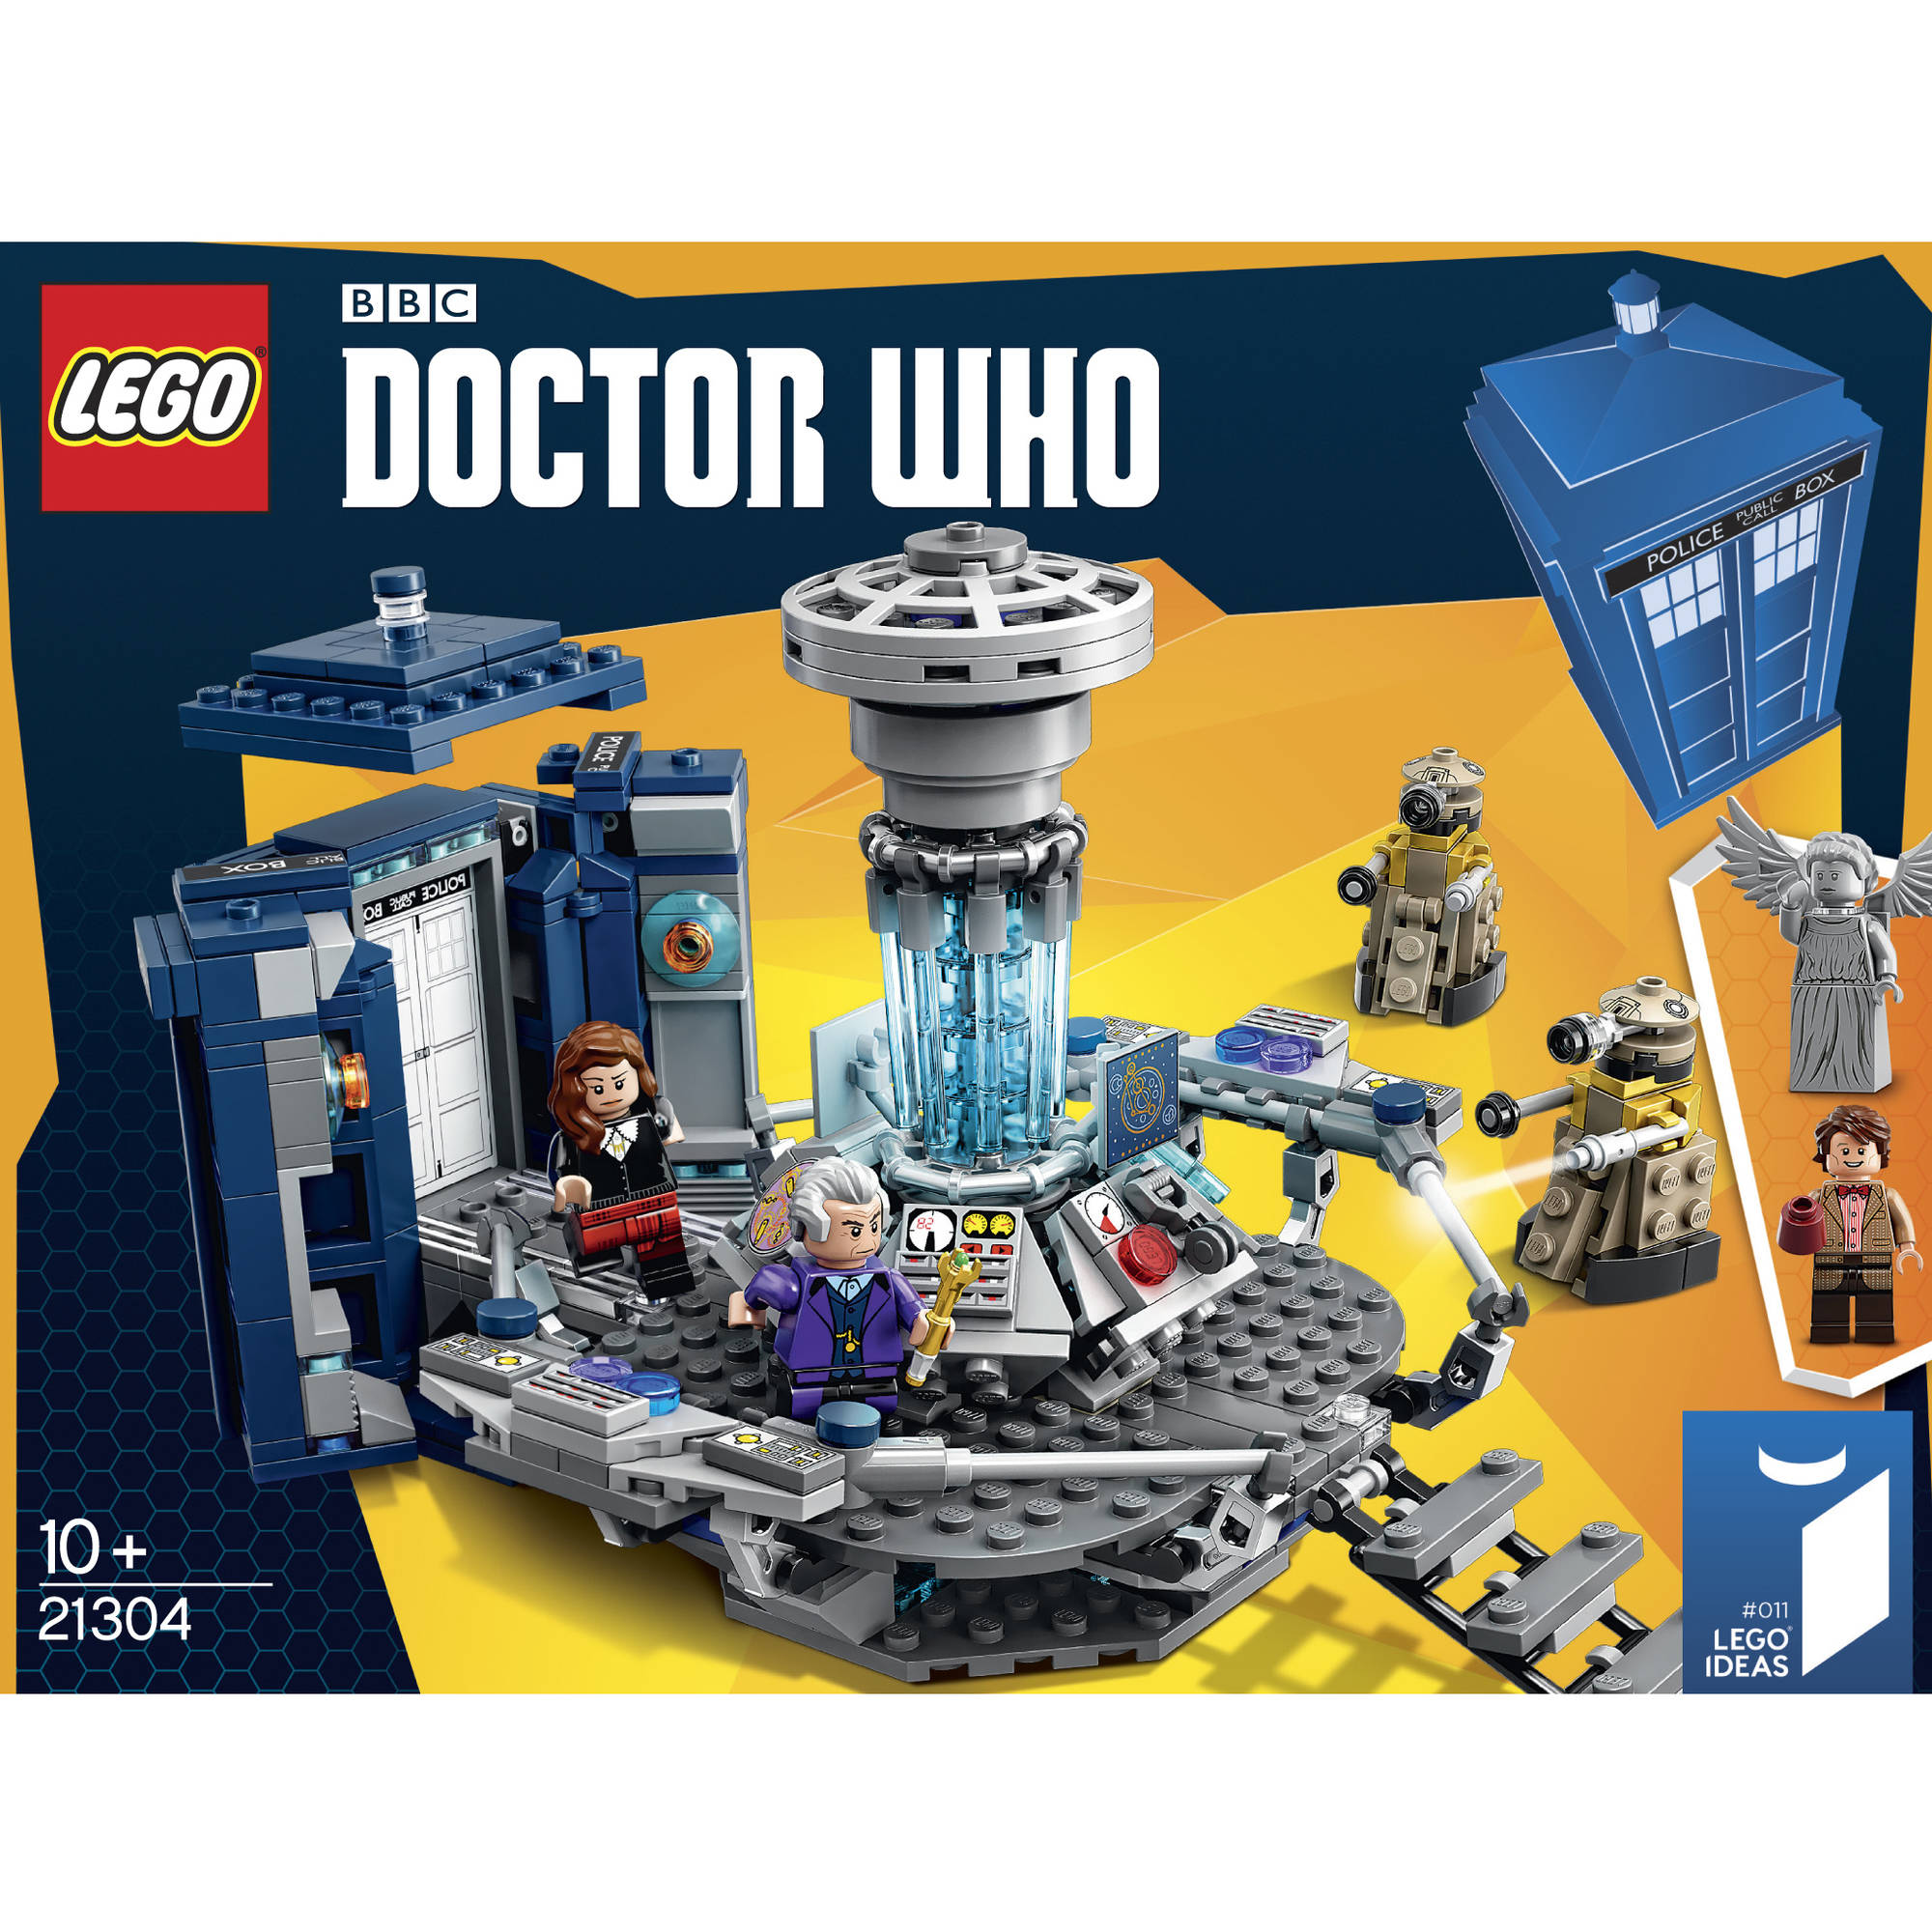 LEGO Doctor Who TARDIS Set 21304   Walmart com